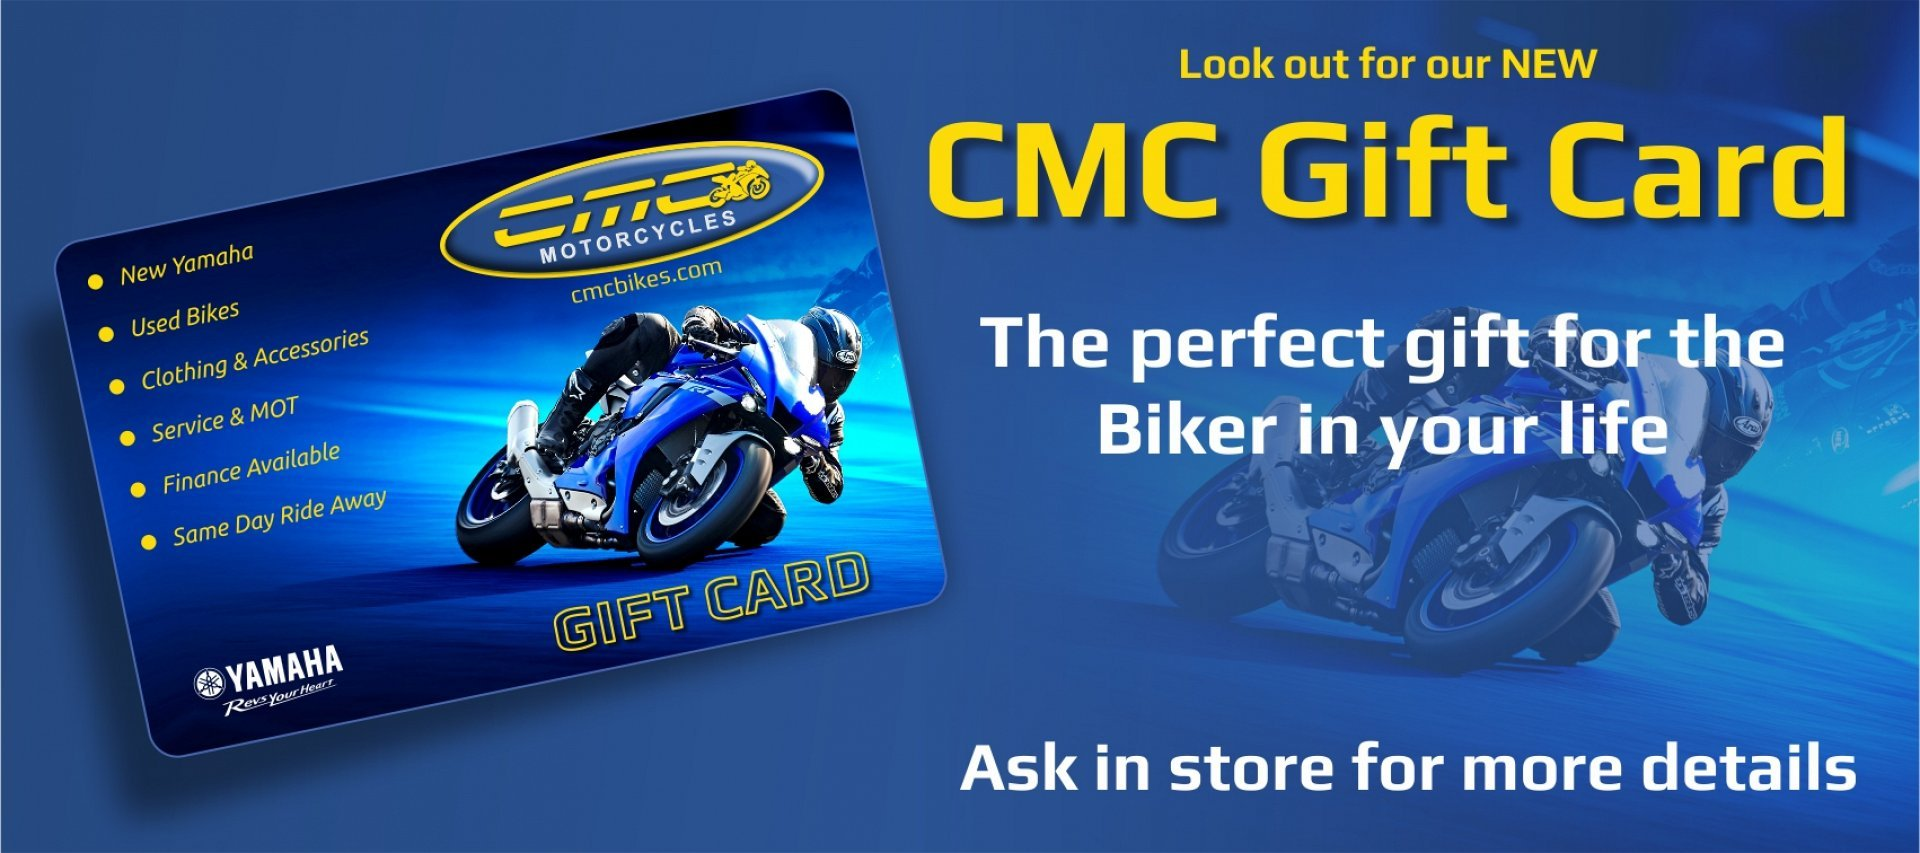 Don't know what to buy the biker in your life? CMC gift vouchers are available to purchase in store, now!